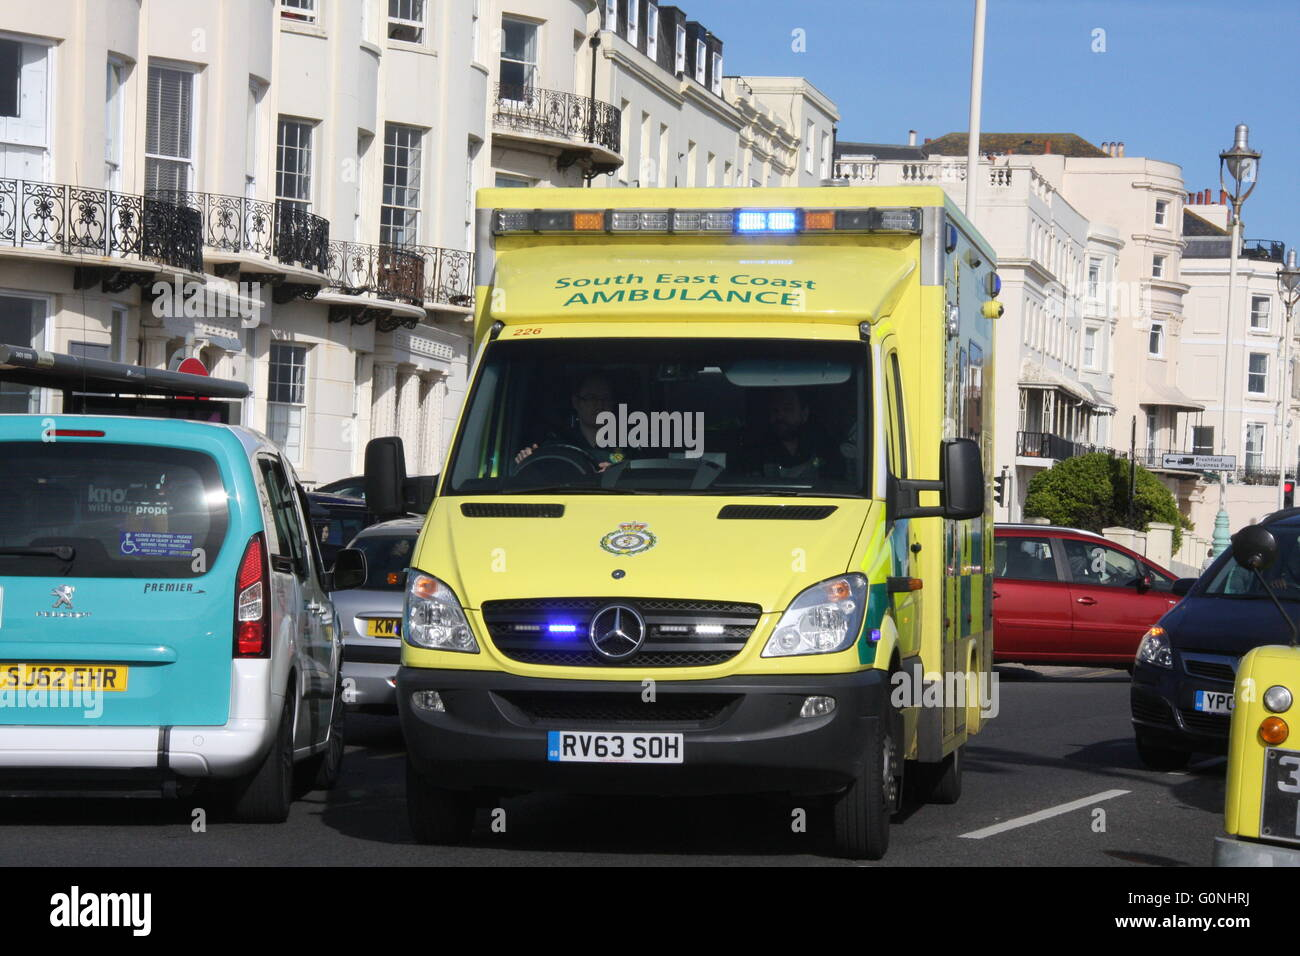 A SOUTH EAST COAST AMBULANCE IN TRAFFIC ON AN EMERGENCY CALL WITH BLUE LIGHTS FLASHING IN BRIGHTON - Stock Image